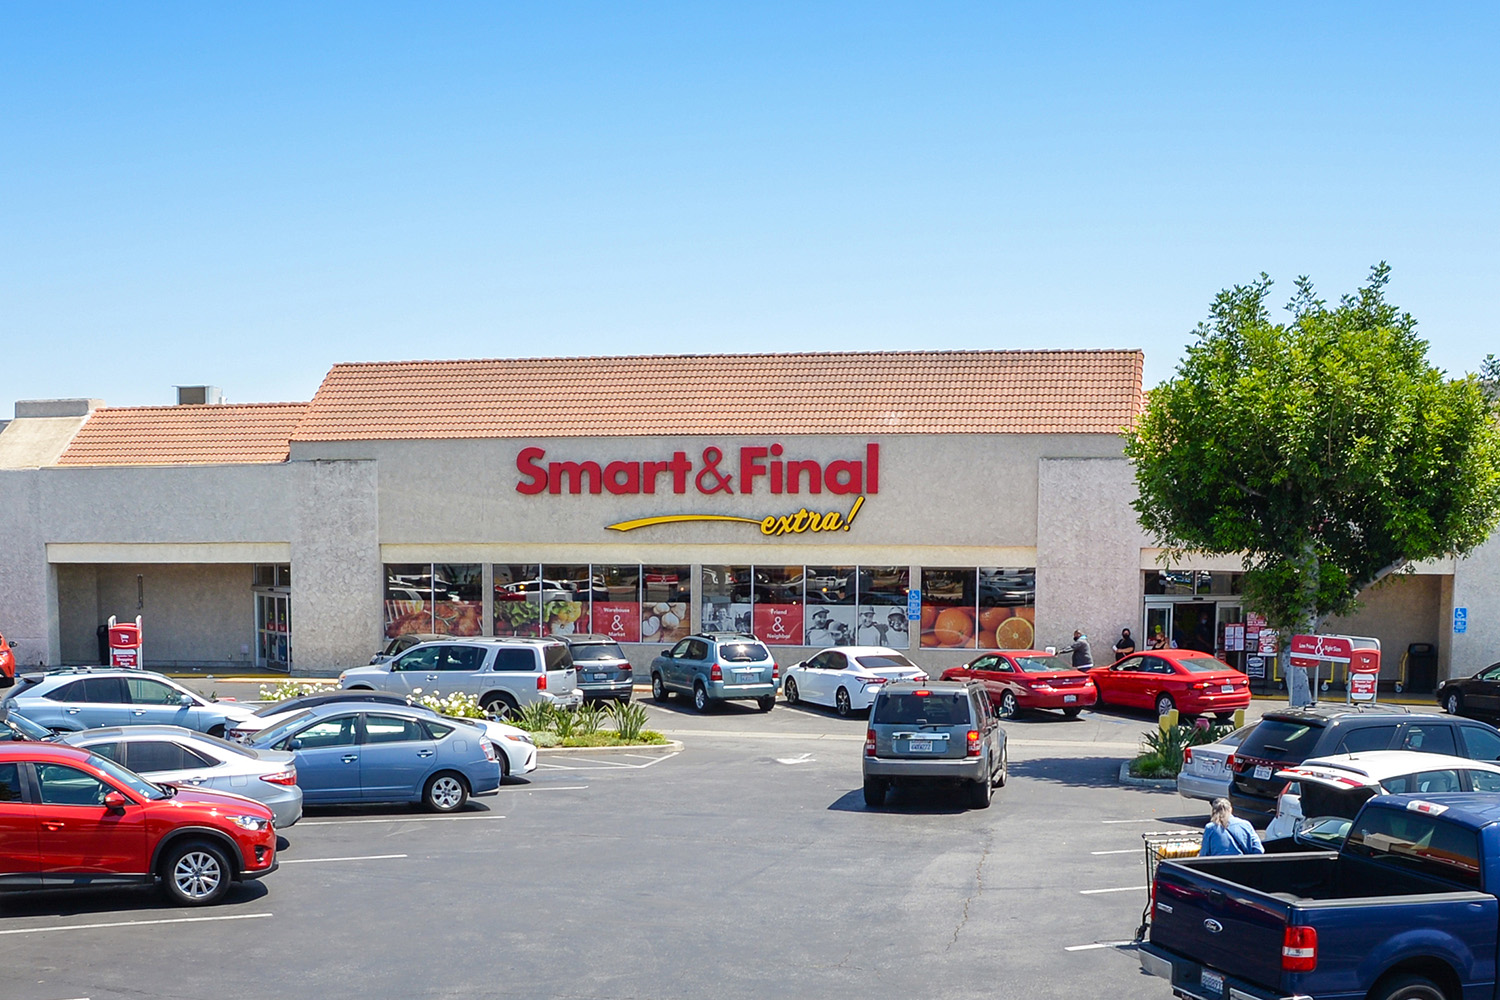 Hanley Investment Group Sells Rare Orange County Retail Asset, a Single-Tenant Smart & Final for $11.3 Million